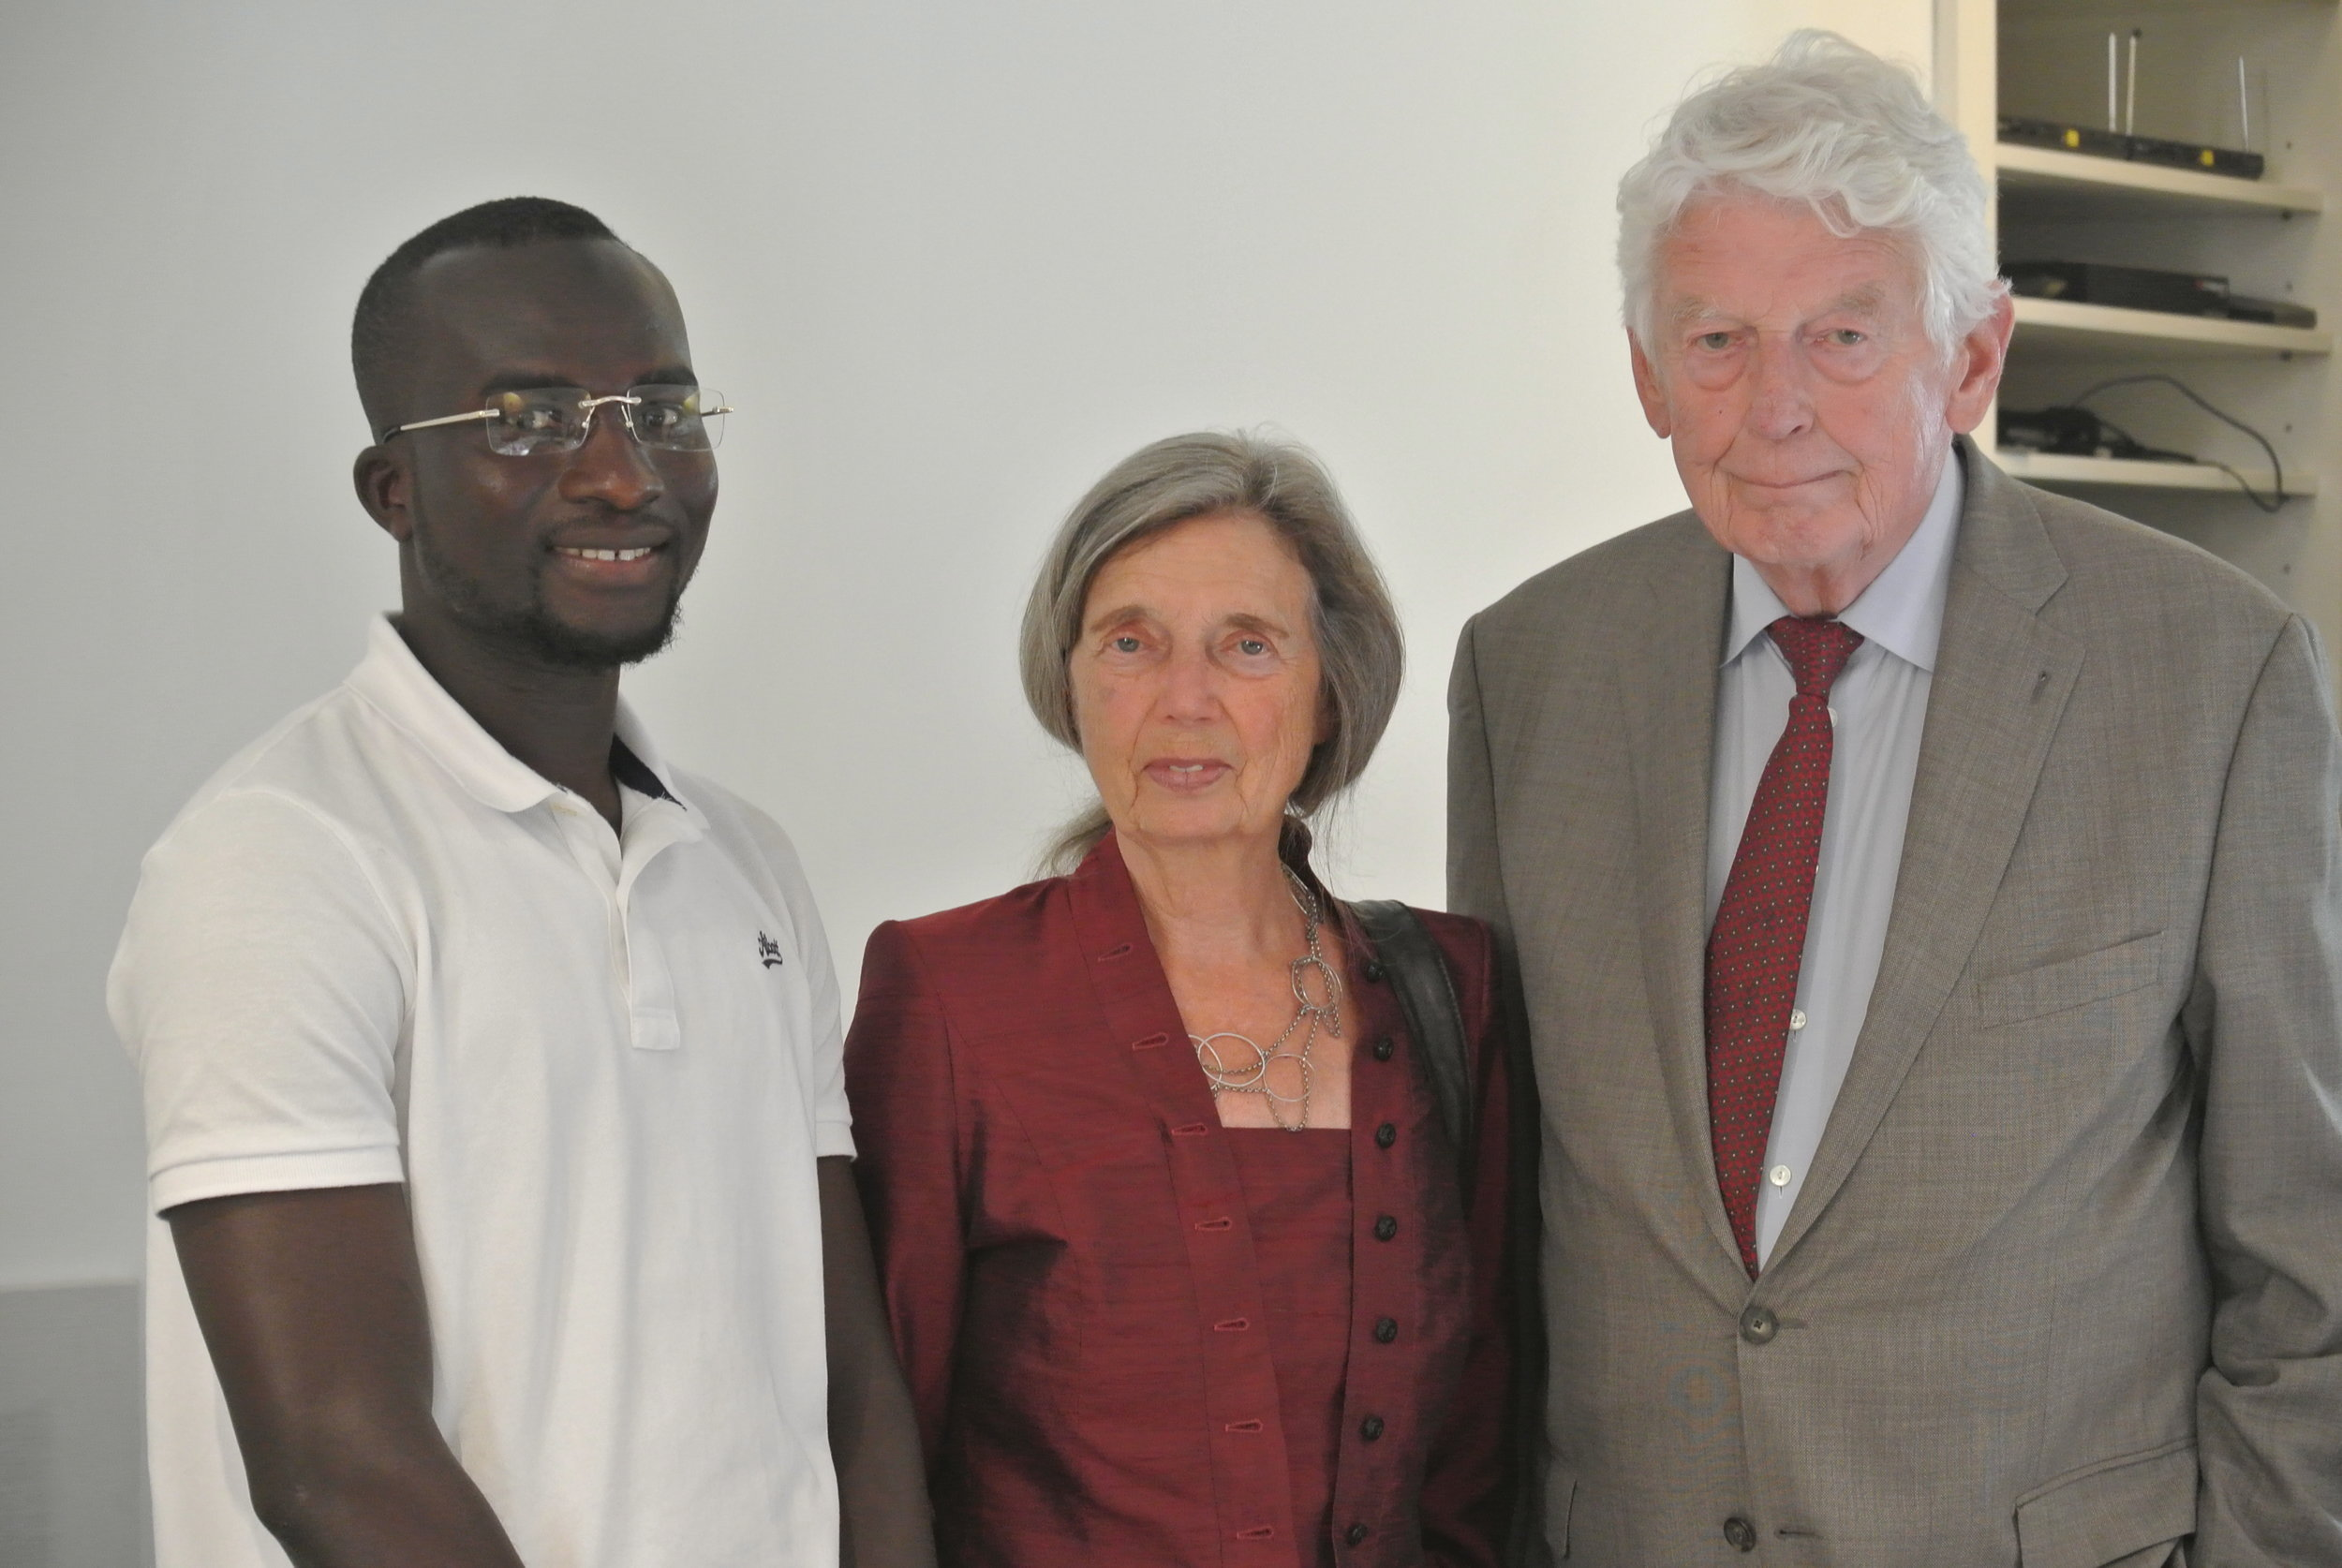 Bakary, Rita Roukema, and Willem Kok, former Prime Minister of The Netherlands. The Embassy of Switzerland, Rome. 11 June 2018.